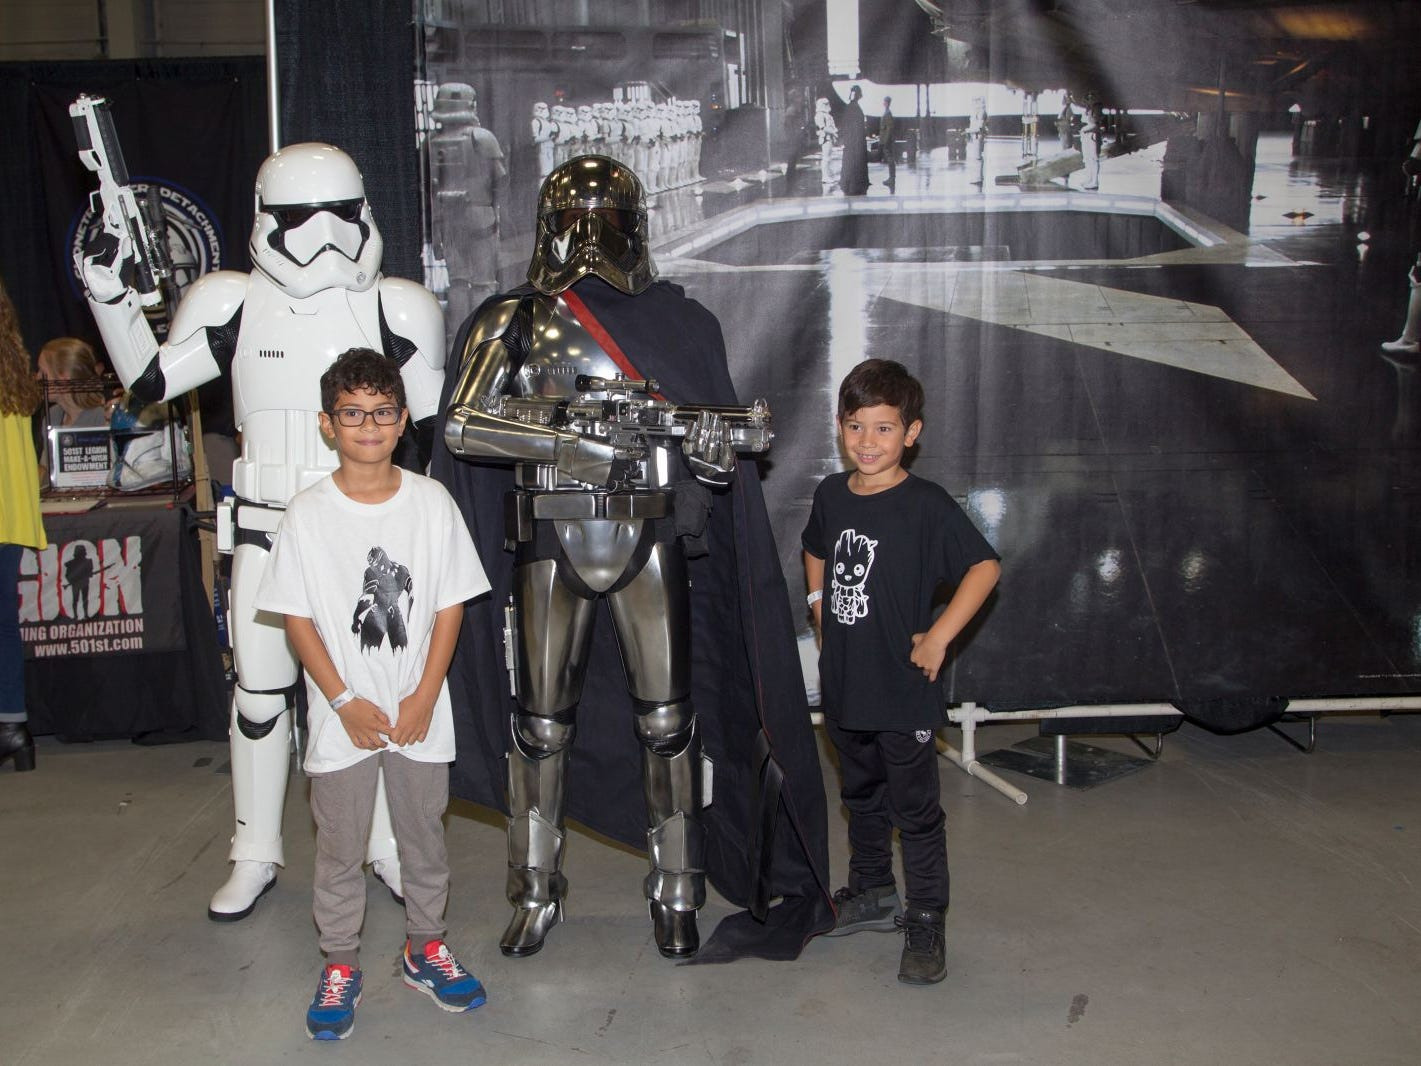 Fans pose for a picture with a Stormtooper and Captain Phasma. The 2018 Heroes and Villains Fan Fest took place at the New Jersey Convention & Expo Center. 09/09/2018